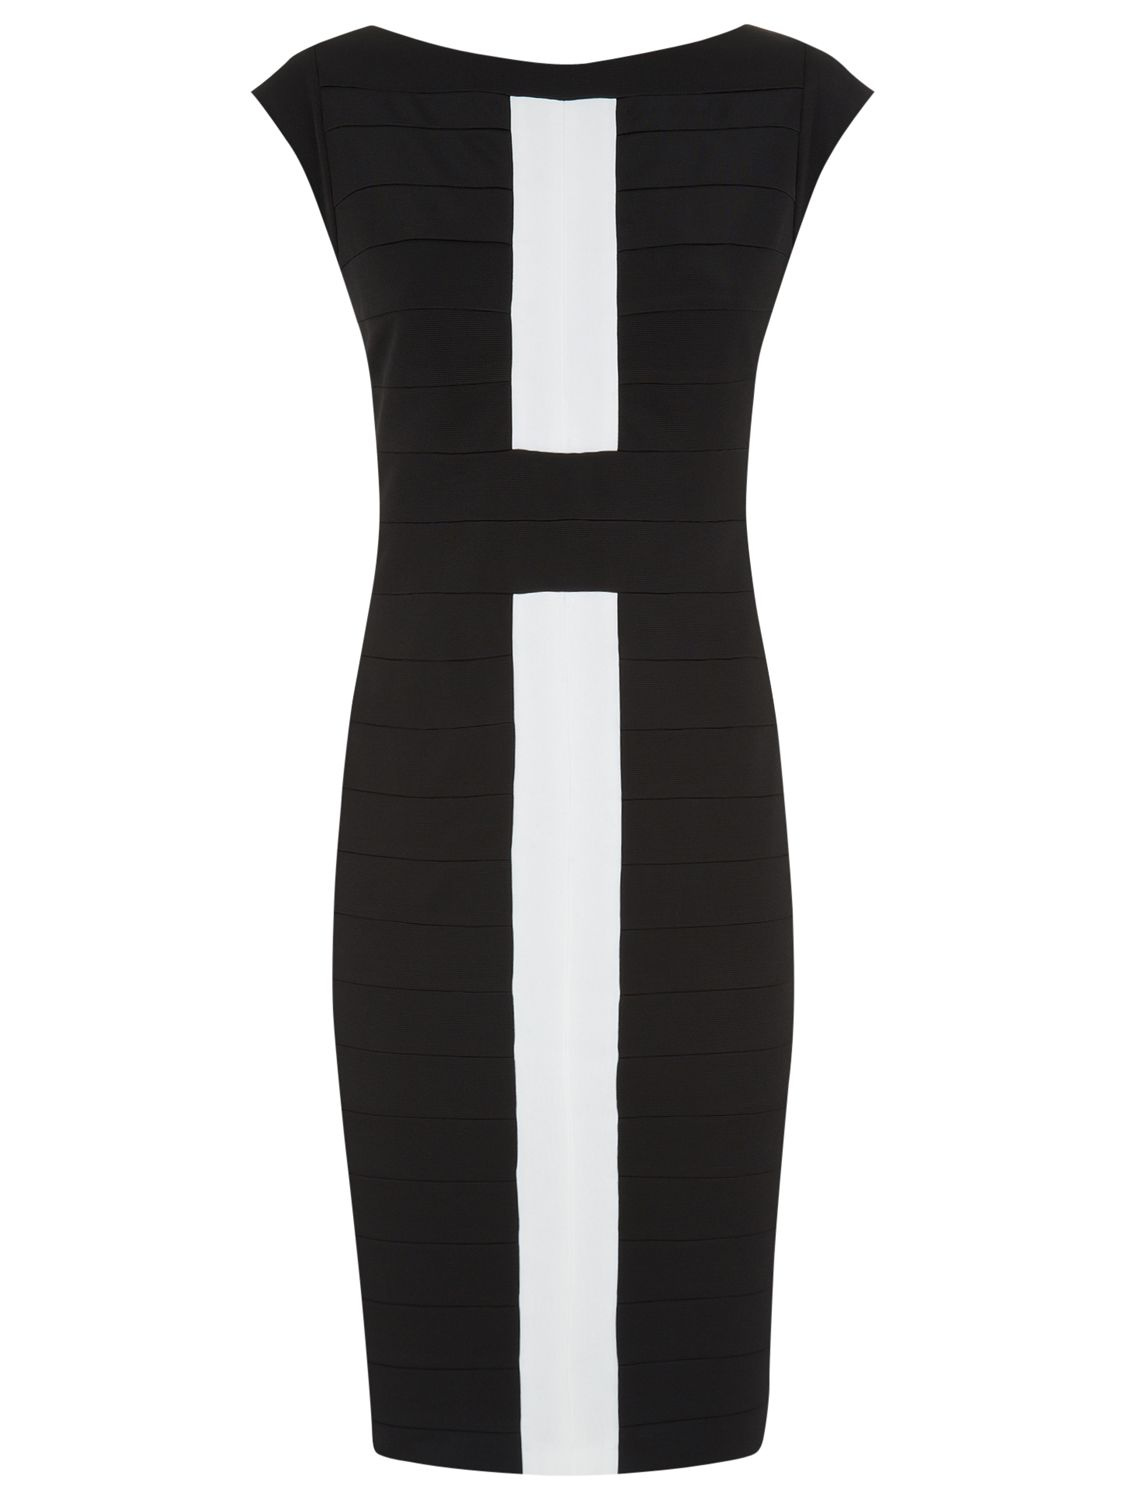 planet midi bandage dress black/white, planet, midi, bandage, dress, black/white, 14|16|18|20, clearance, womenswear offers, womens dresses offers, women, inactive womenswear, new reductions, womens dresses, special offers, 1631384